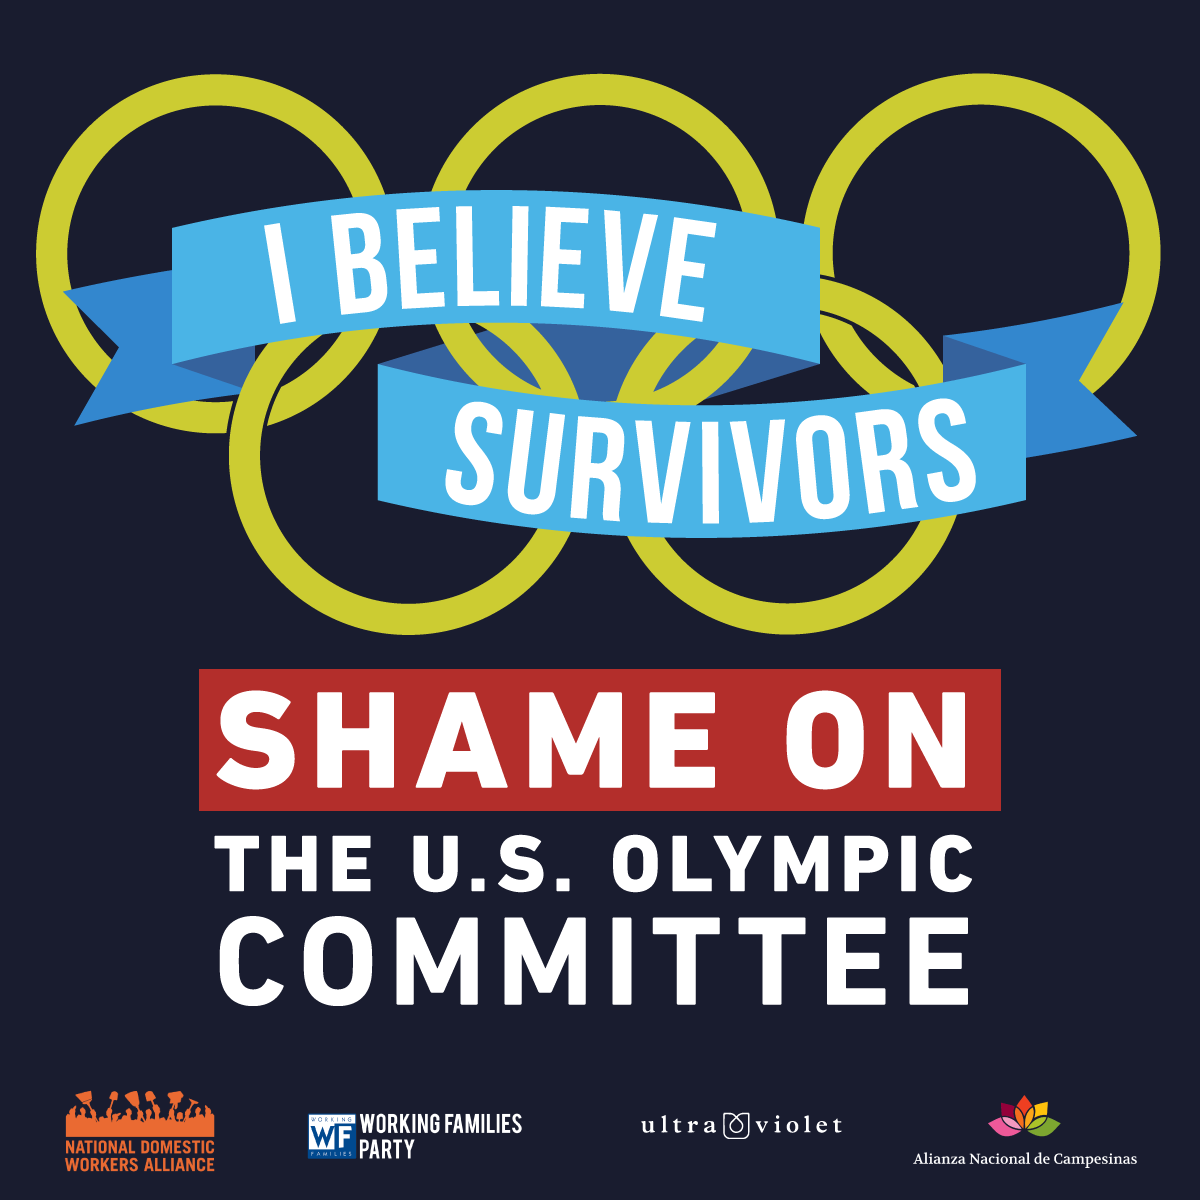 Show solidarity with survivors and athletes